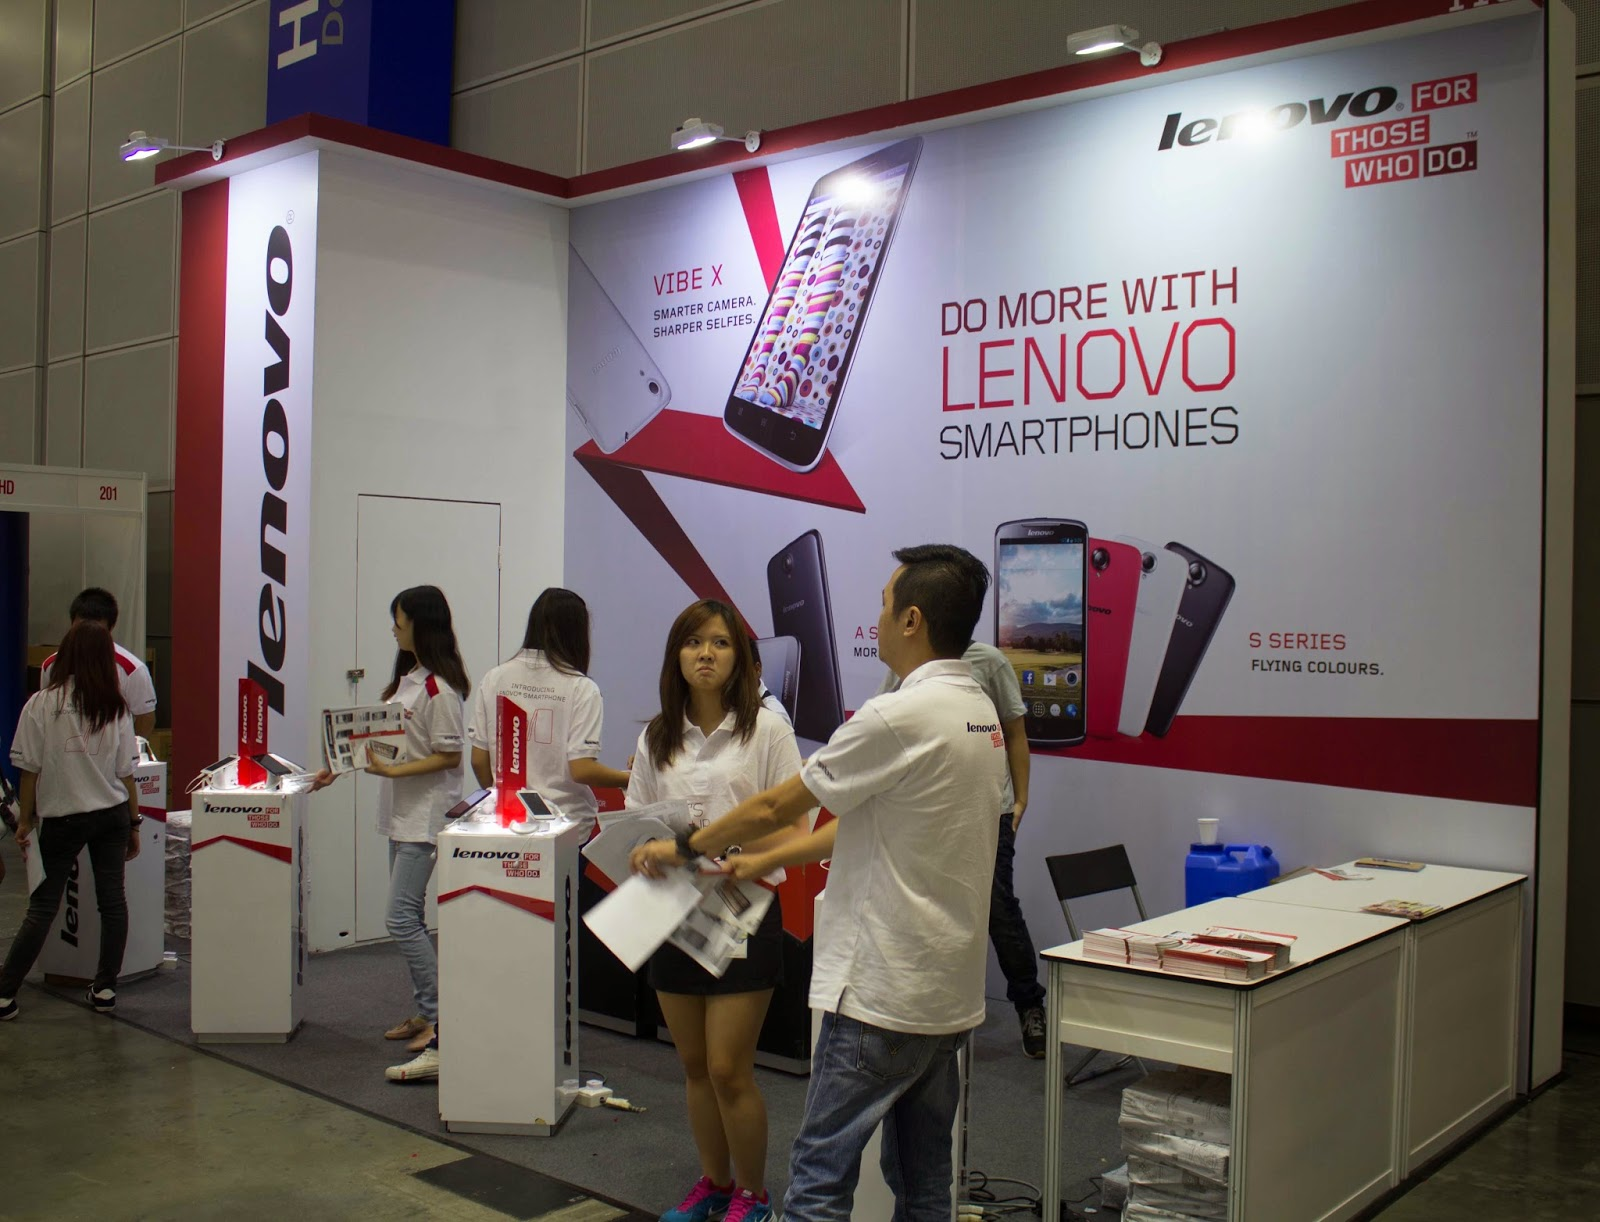 Coverage of PIKOM PC Fair 2014 @ Kuala Lumpur Convention Center 306